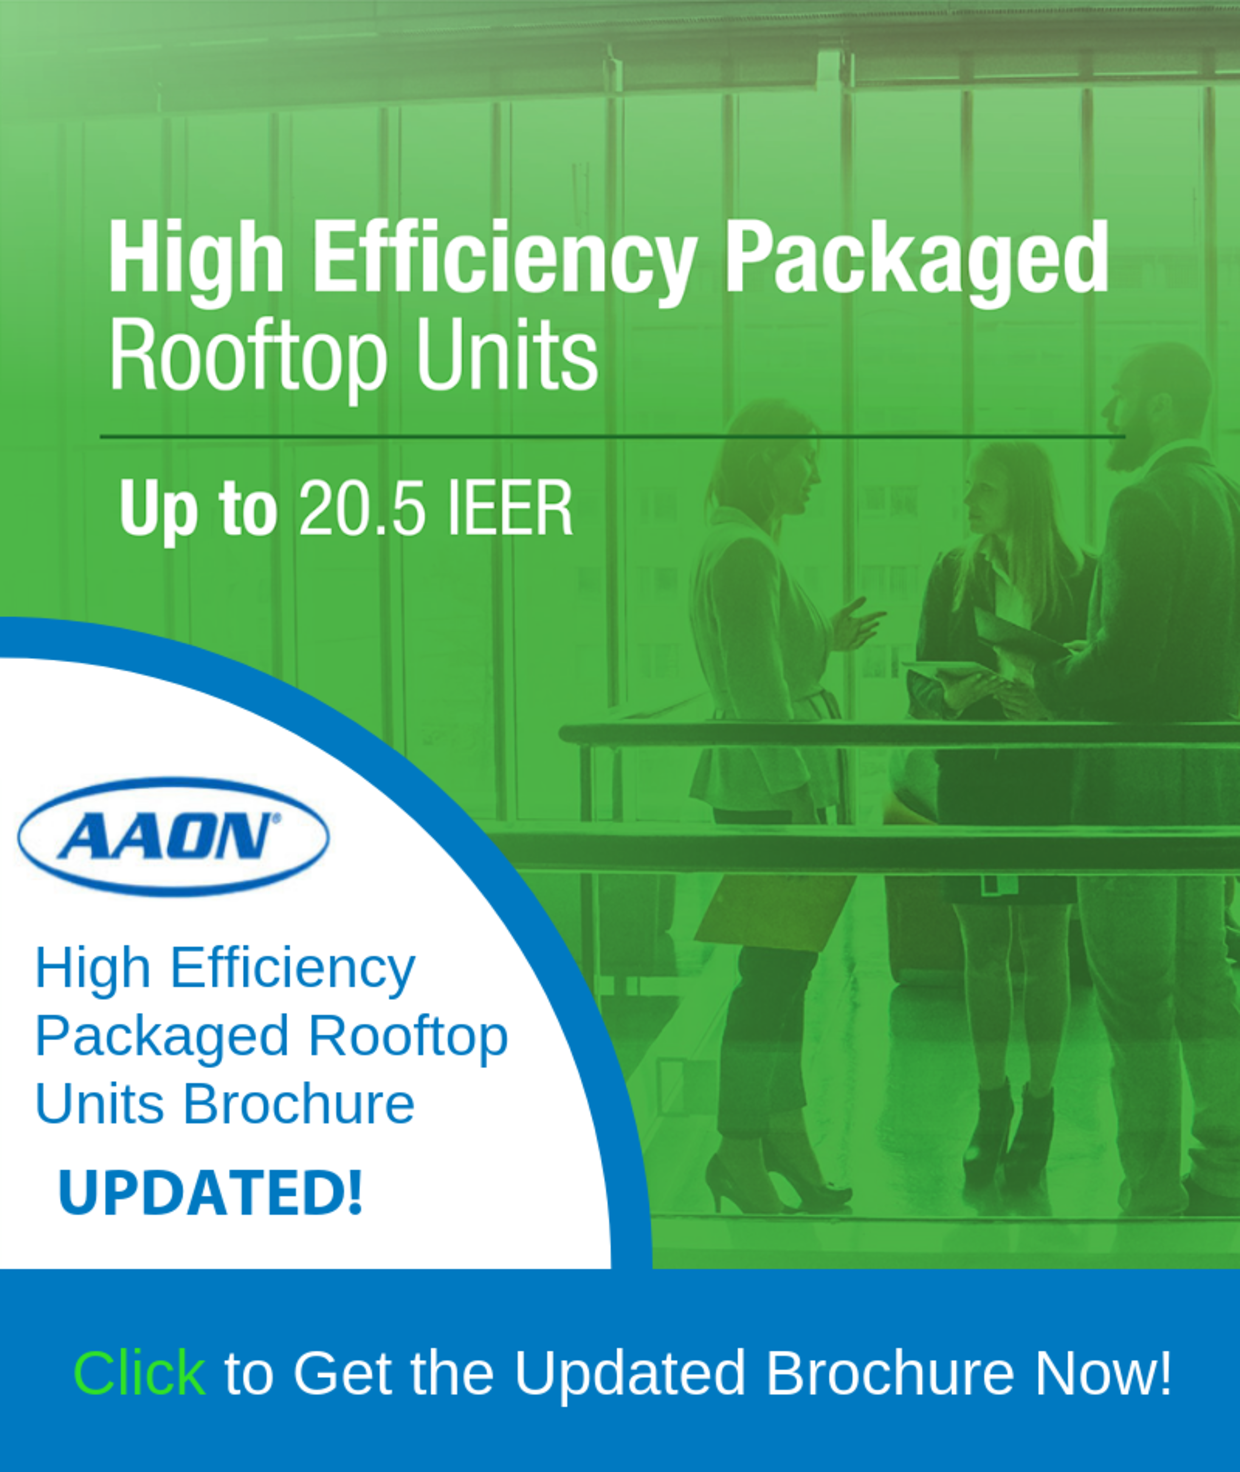 AAON High Efficiency Packaged Rooftop Units Brochure Updated